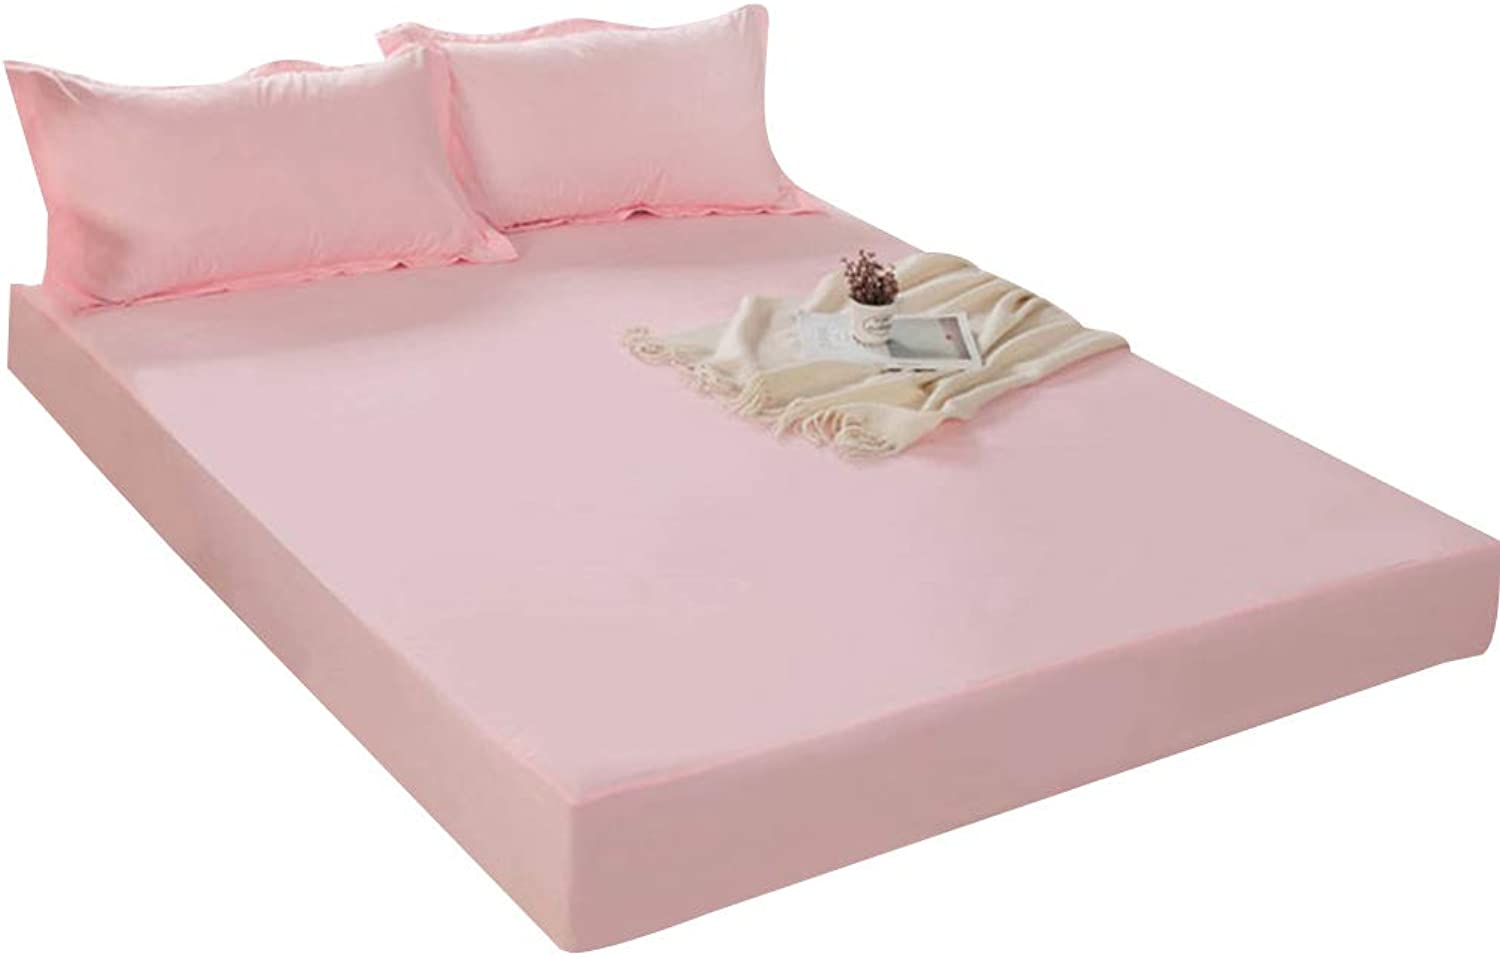 ZHAOHUI Mattress Predector Polyester Waterproof Hypoallergenic Breathable Non-Slip Noiseless Soft Skin-Friendly, 3 colors, 3 Sizes (color   Pink, Size   180X200cm)